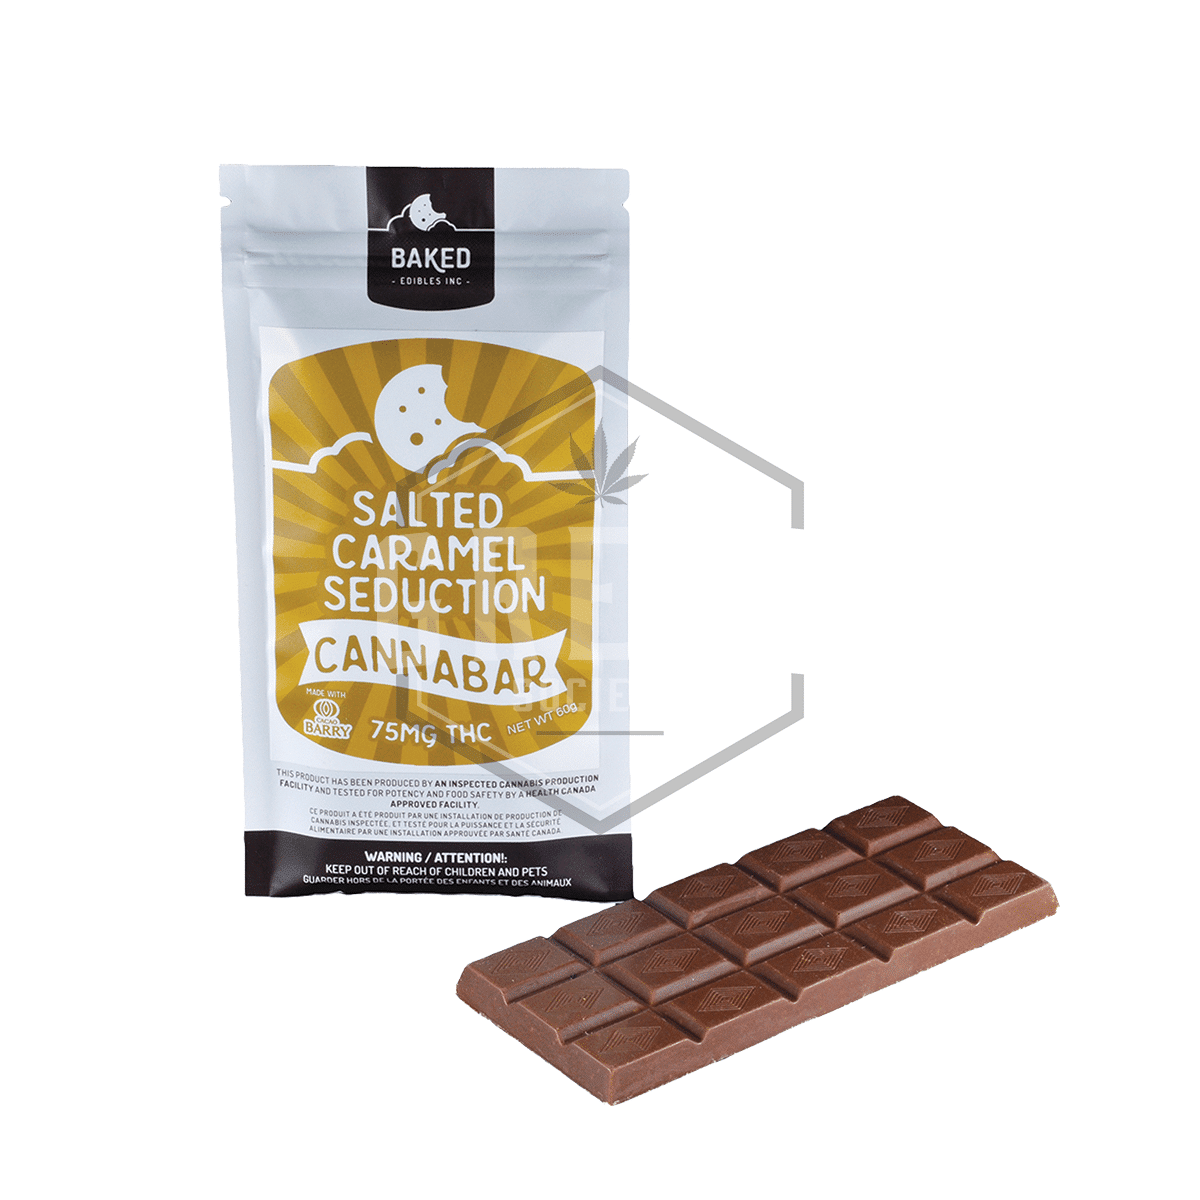 Salted Caramel Seduction Chocolate Bar (75mg) by Baked Edibles by Green Society - Image © 2018 Green Society. All Rights Reserved.